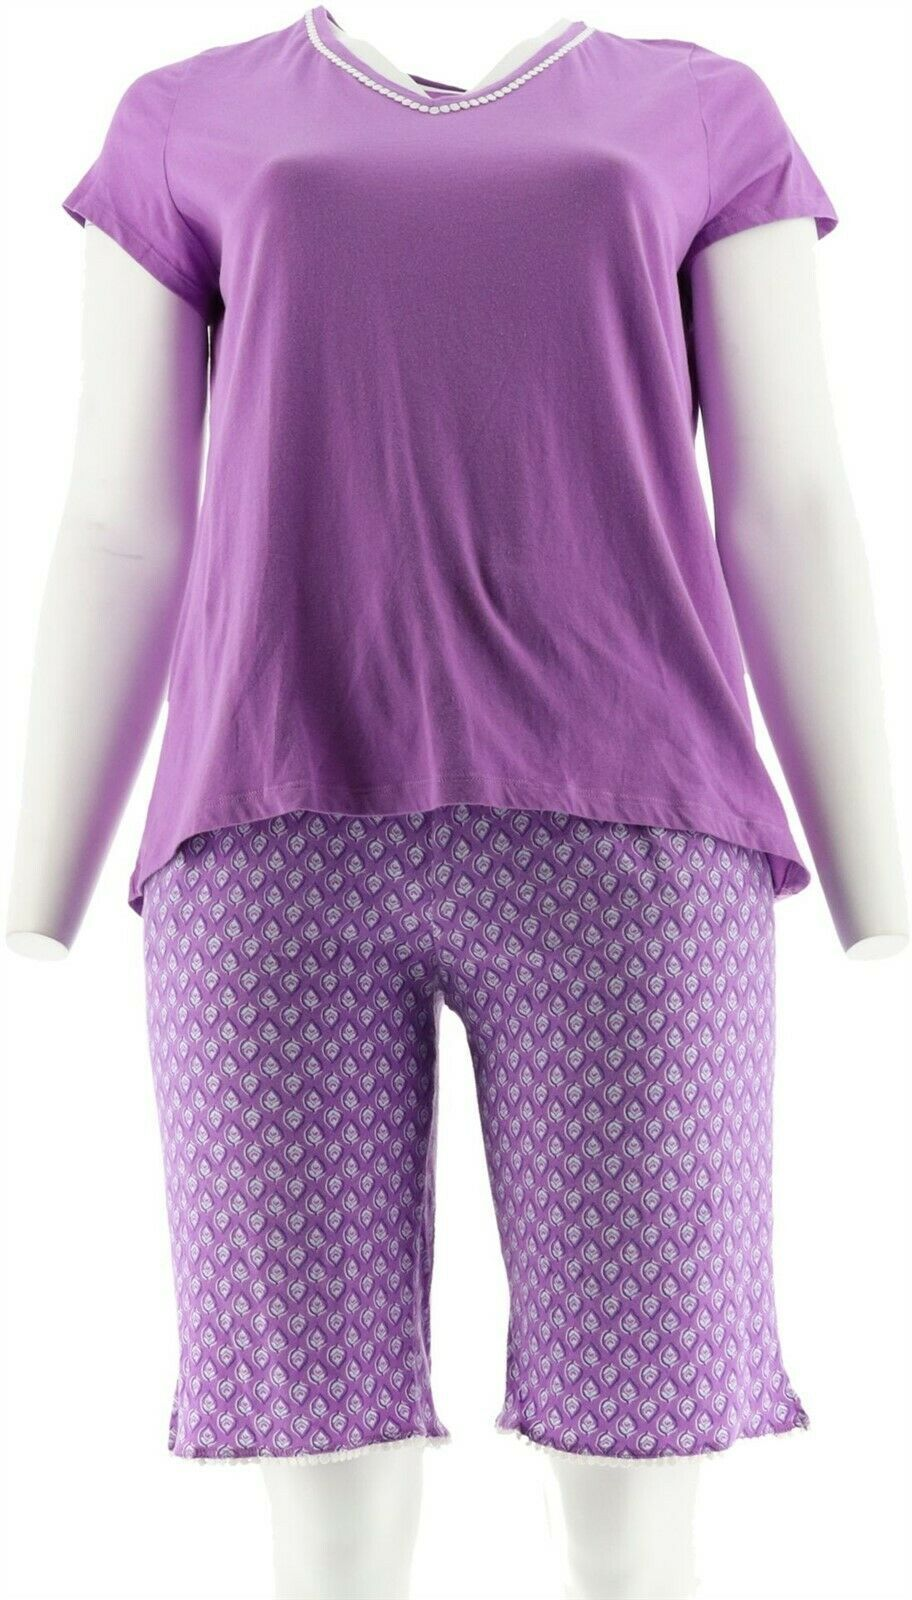 Primary image for Carole Hochman Floral Cotton Jersey 3pc Pajama Set Purple PL NEW A302161